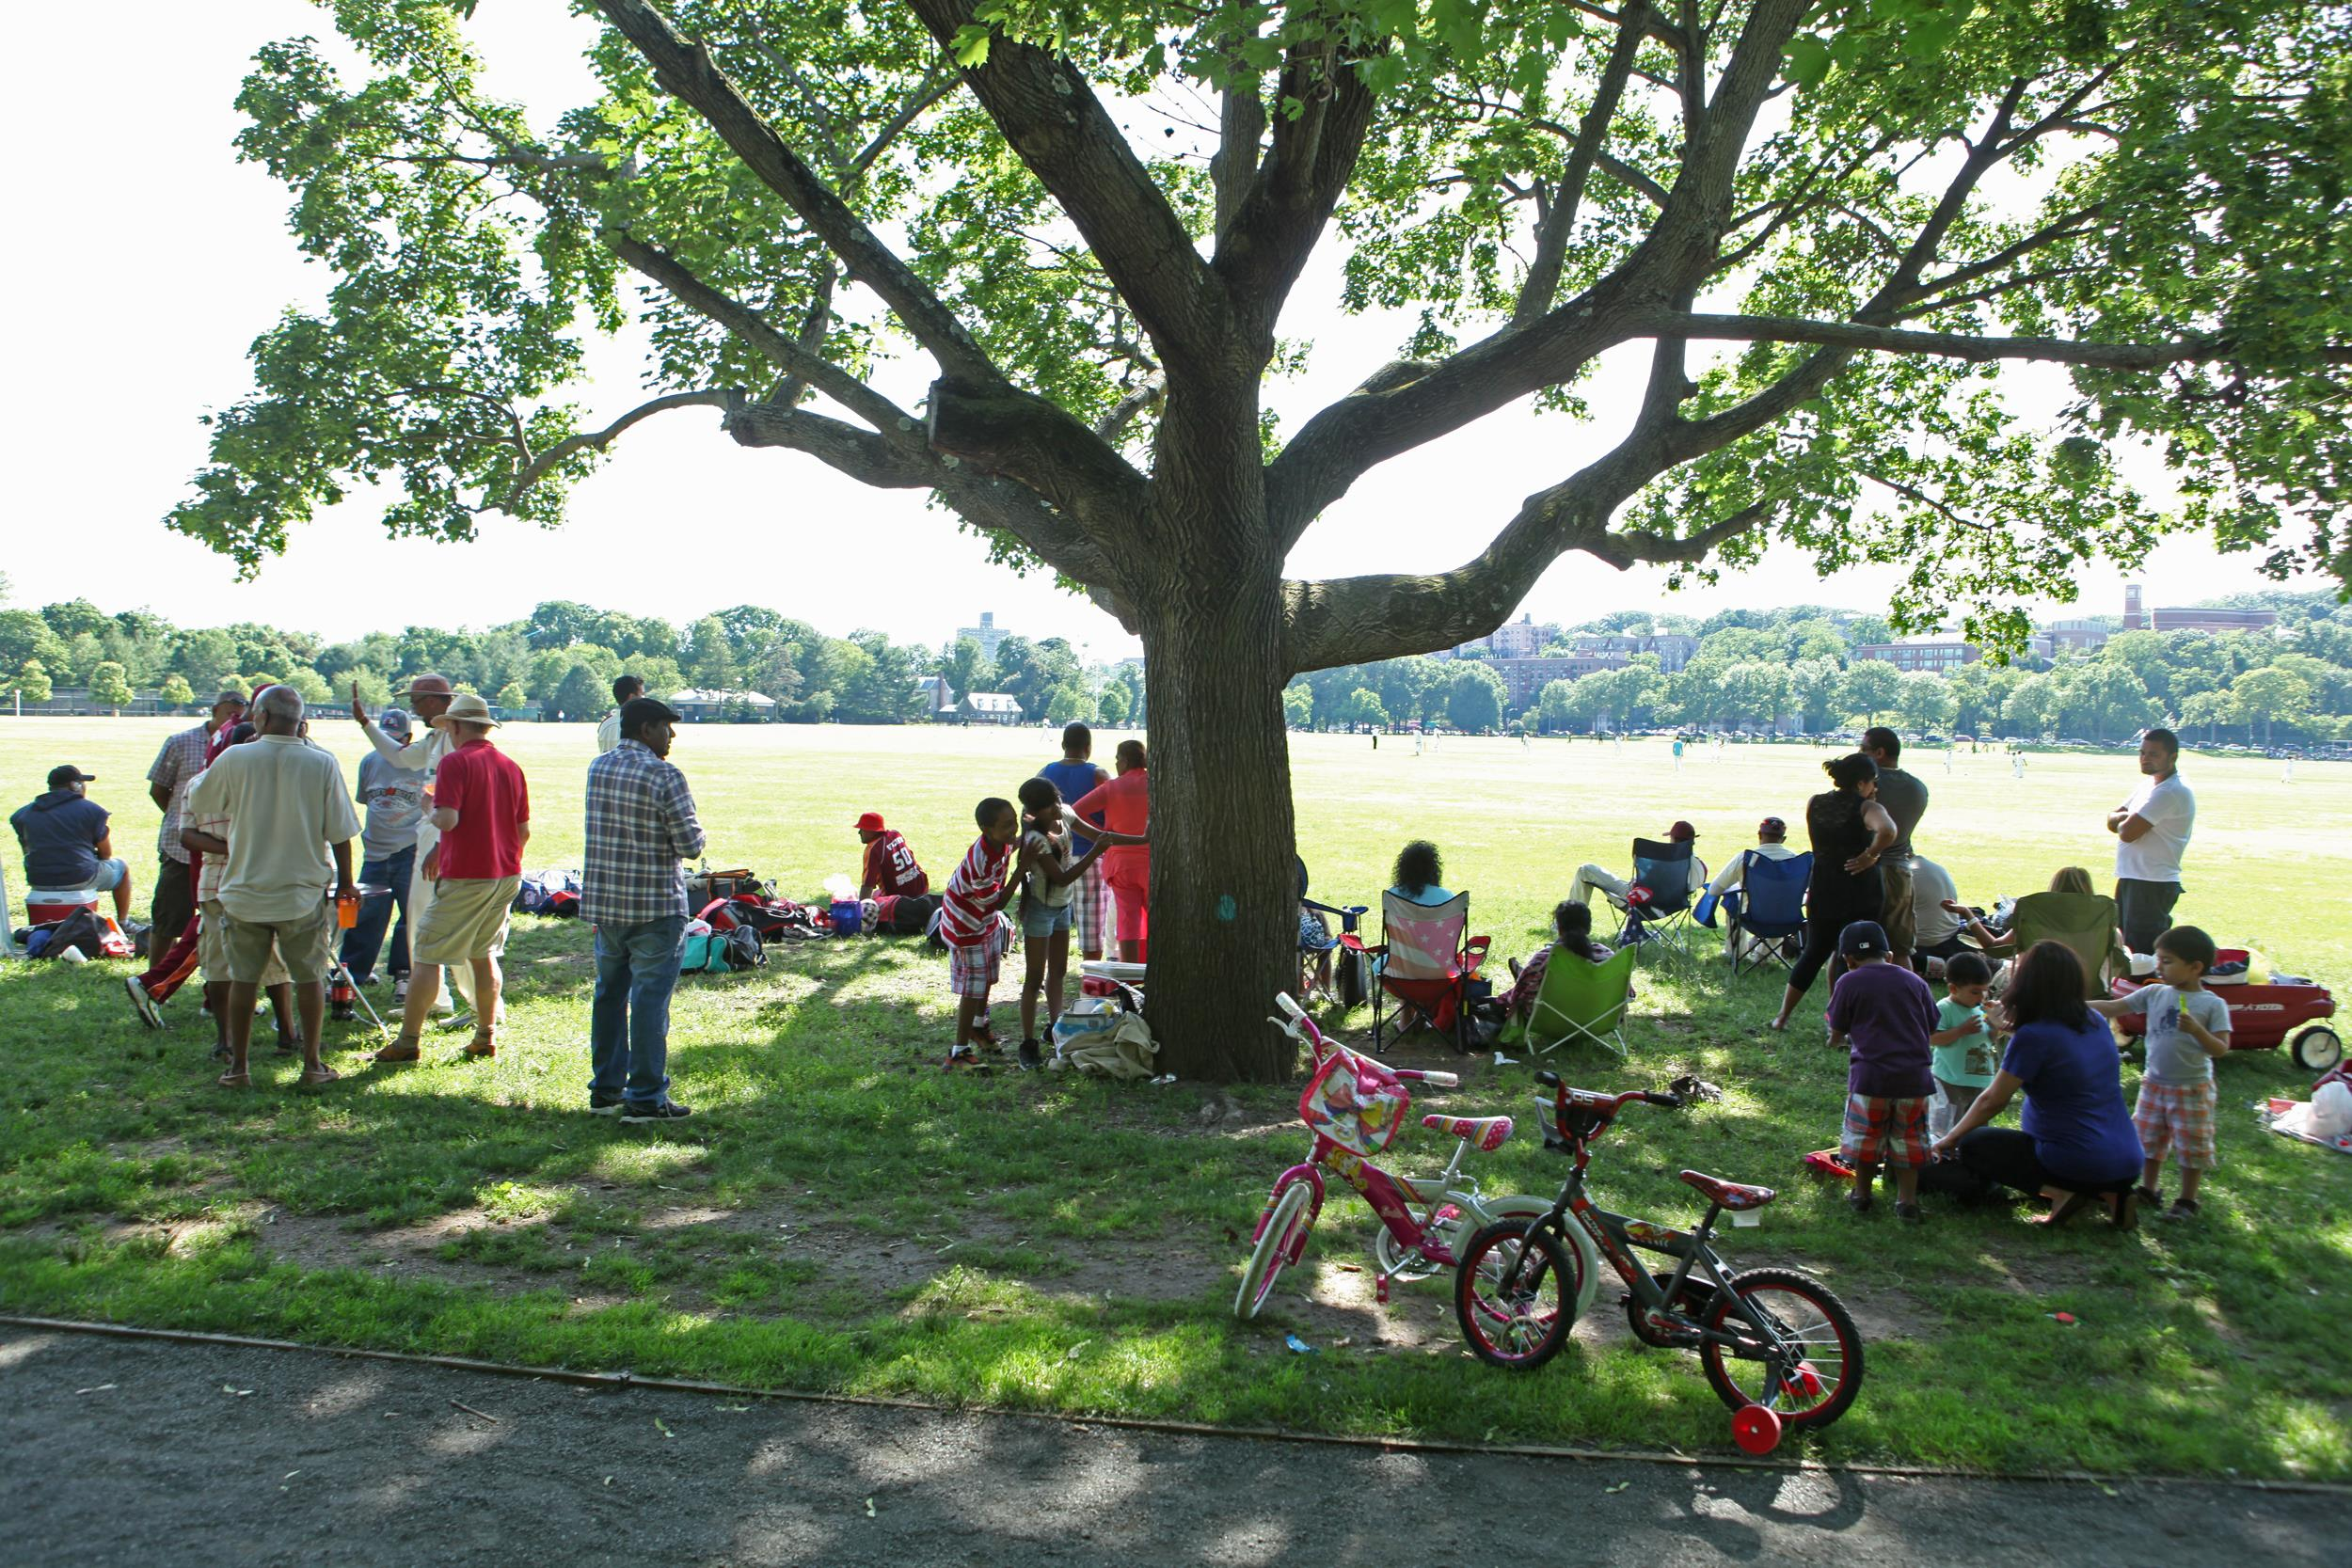 Cricket fans watch matches from the shade of a tree in Van Cortlandt Park in Bronx, N.Y., on June 15.